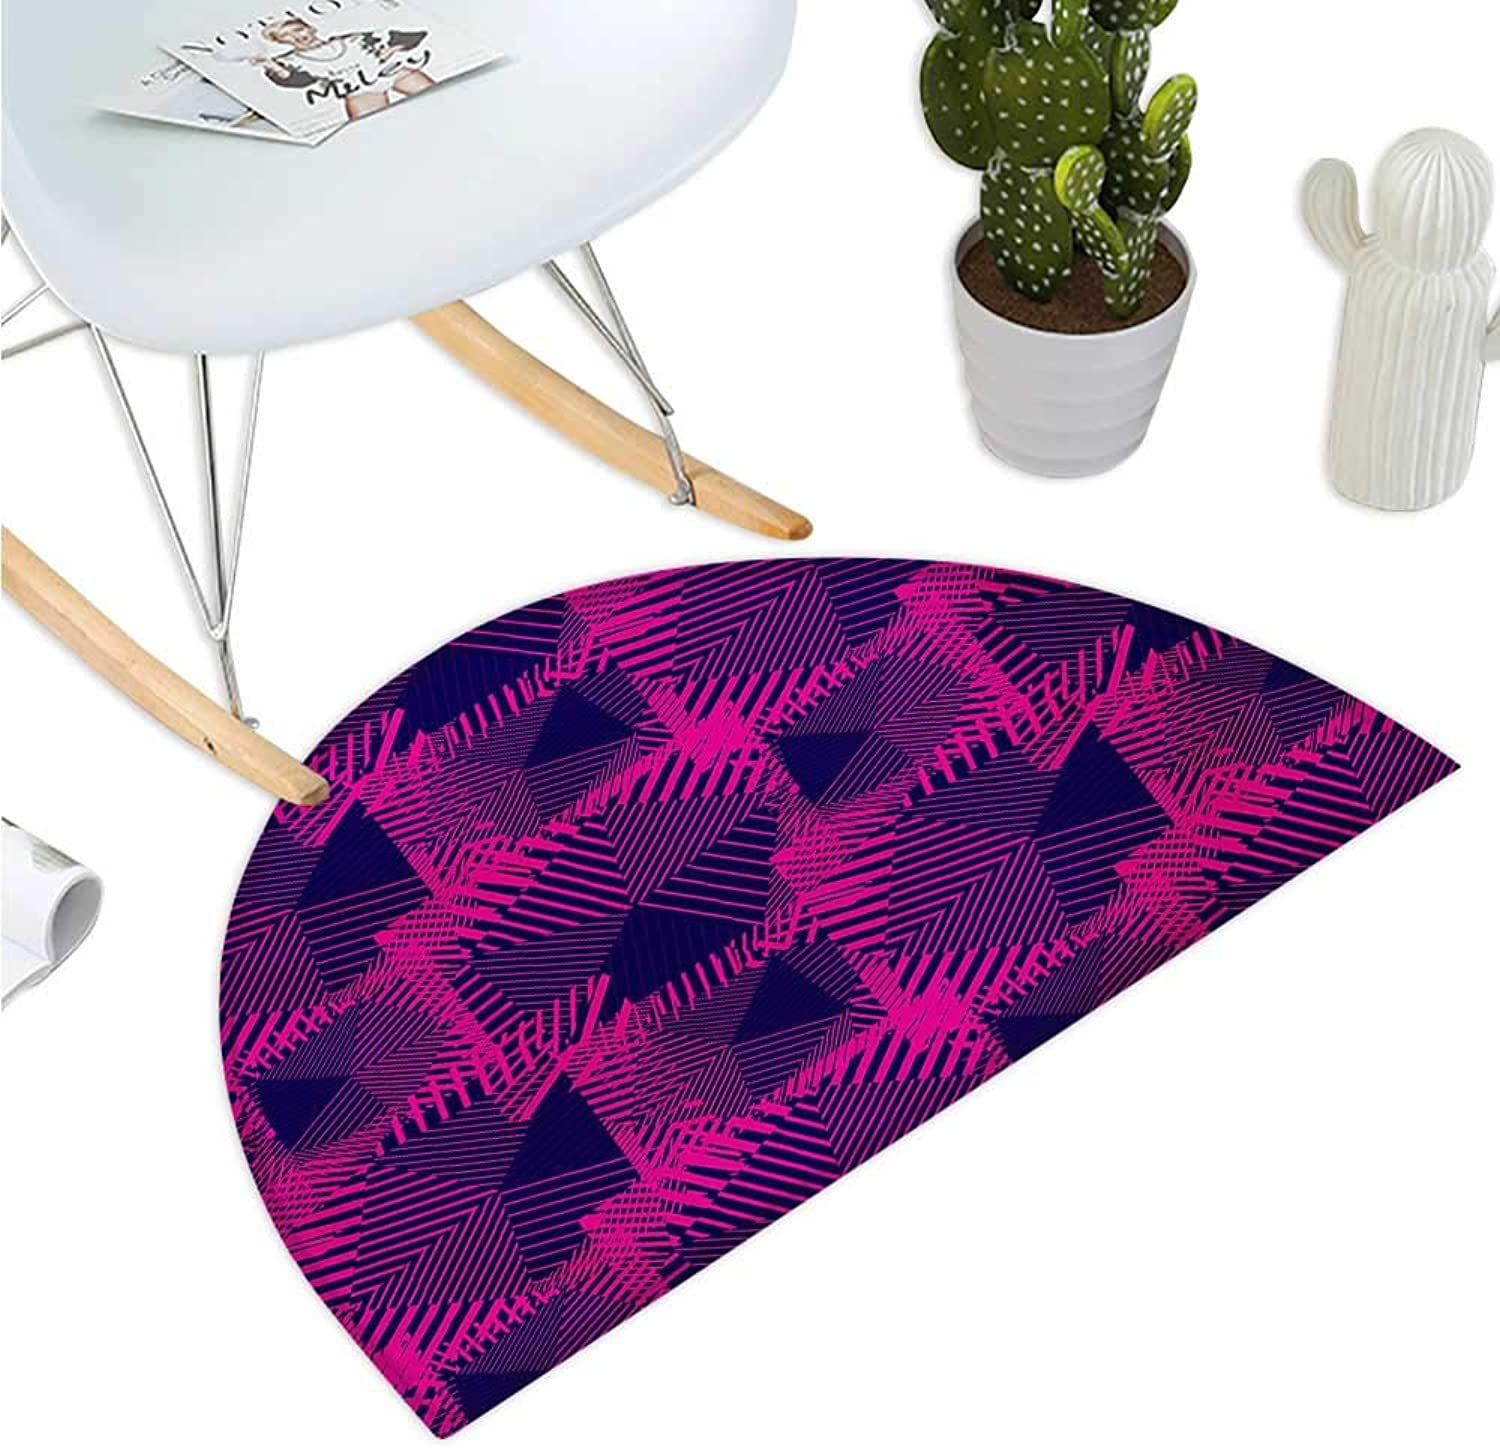 Magenta Semicircular Cushion Trippy Zip Style Mix Pattern with Dark color Effects and Diagonal Linked Lines Halfmoon doormats H 47.2  xD 70.8  Fuchsia Purple